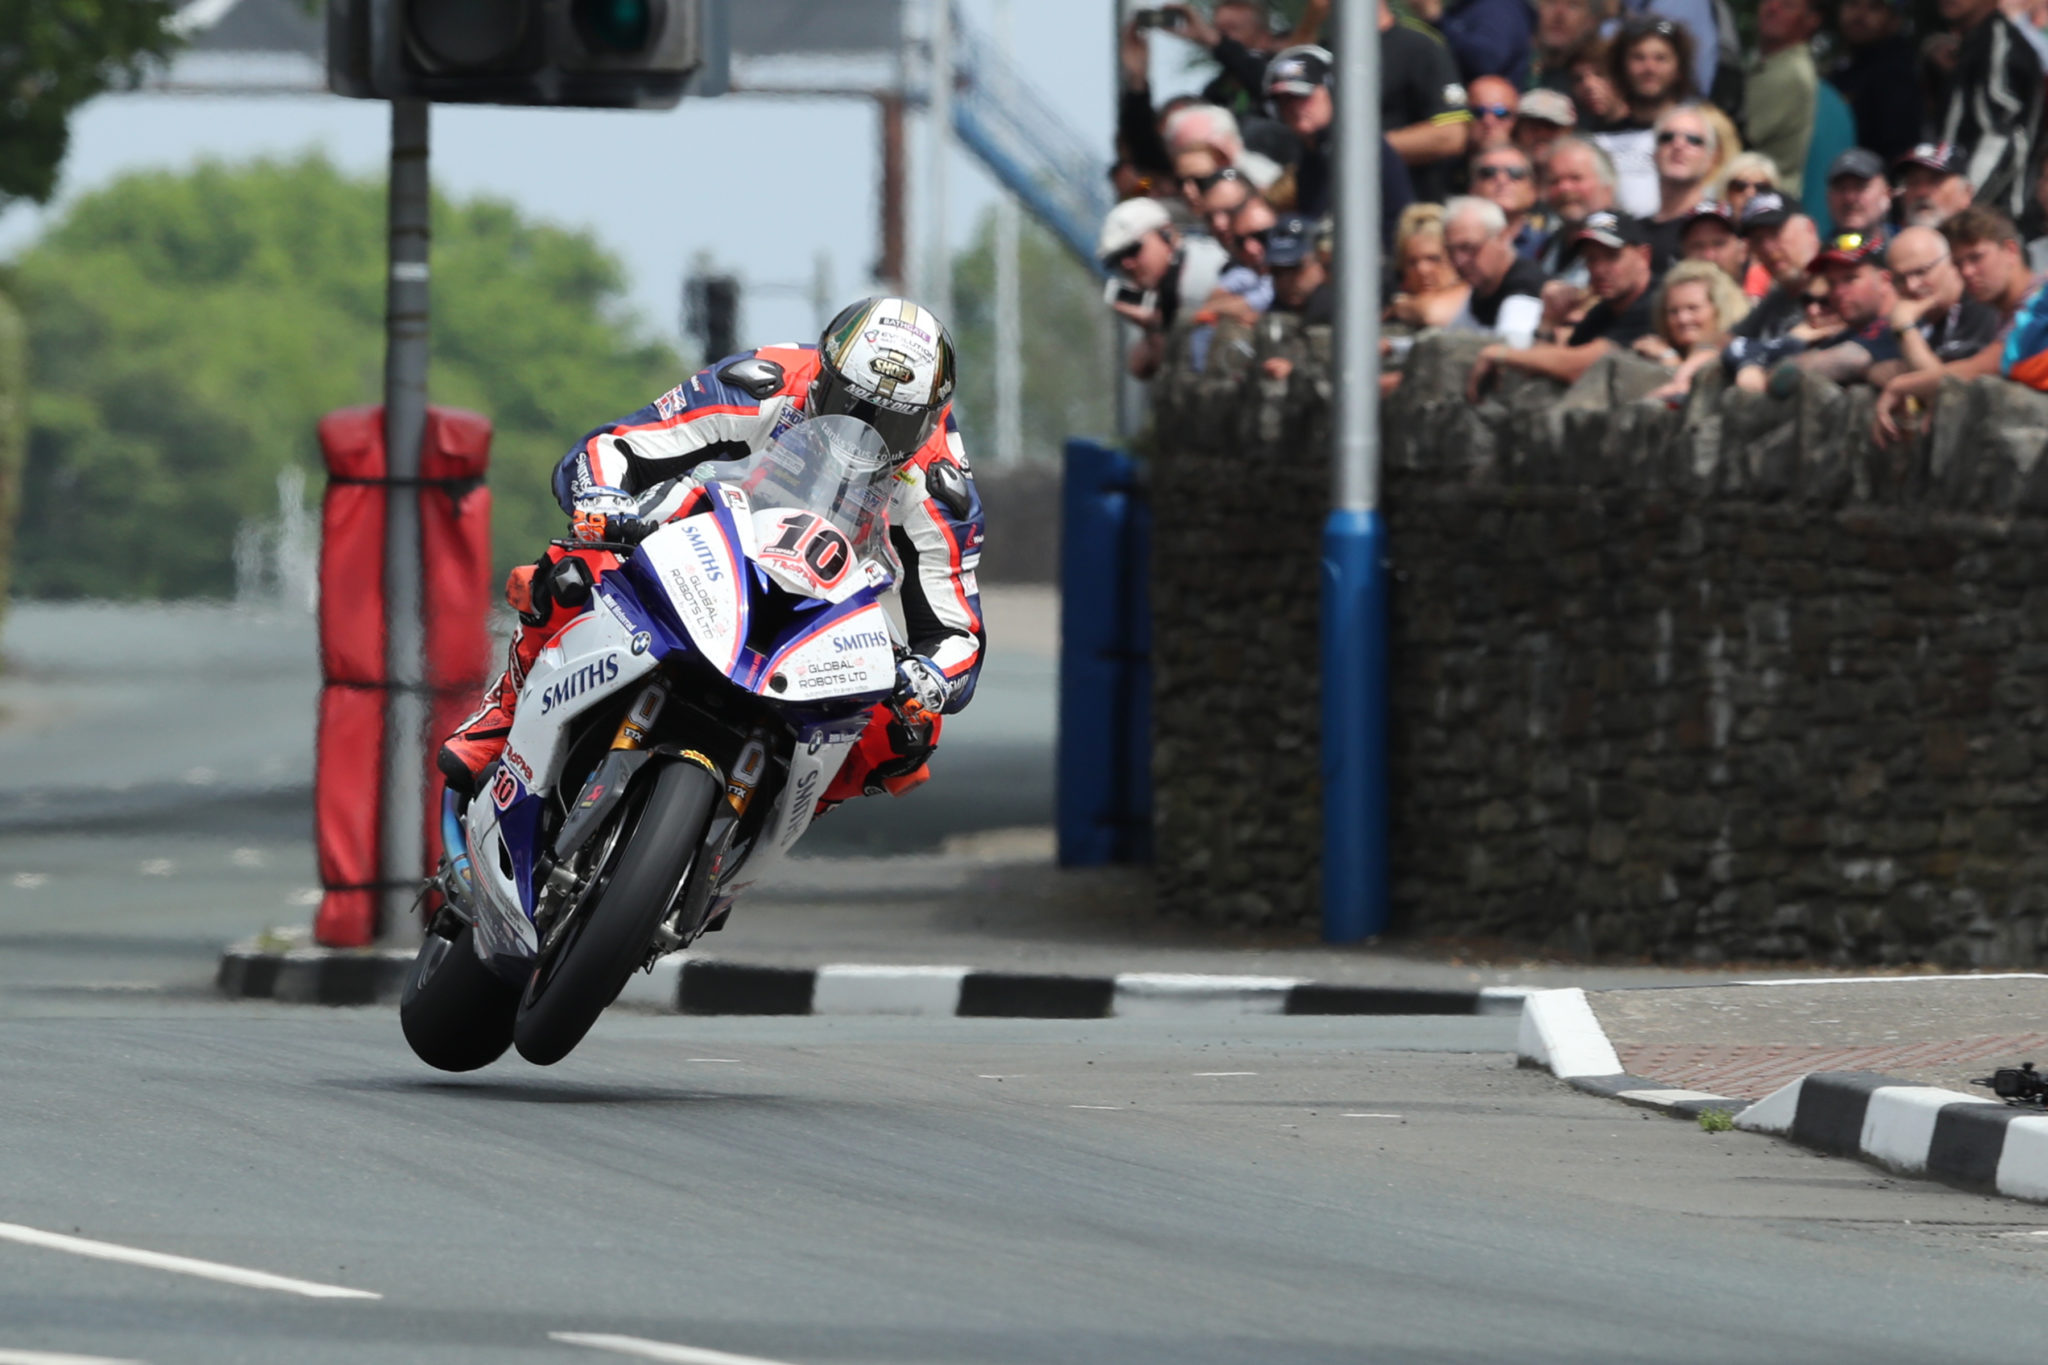 Peter Hickman on his way to Senior TT glory credit Pacemaker Press International